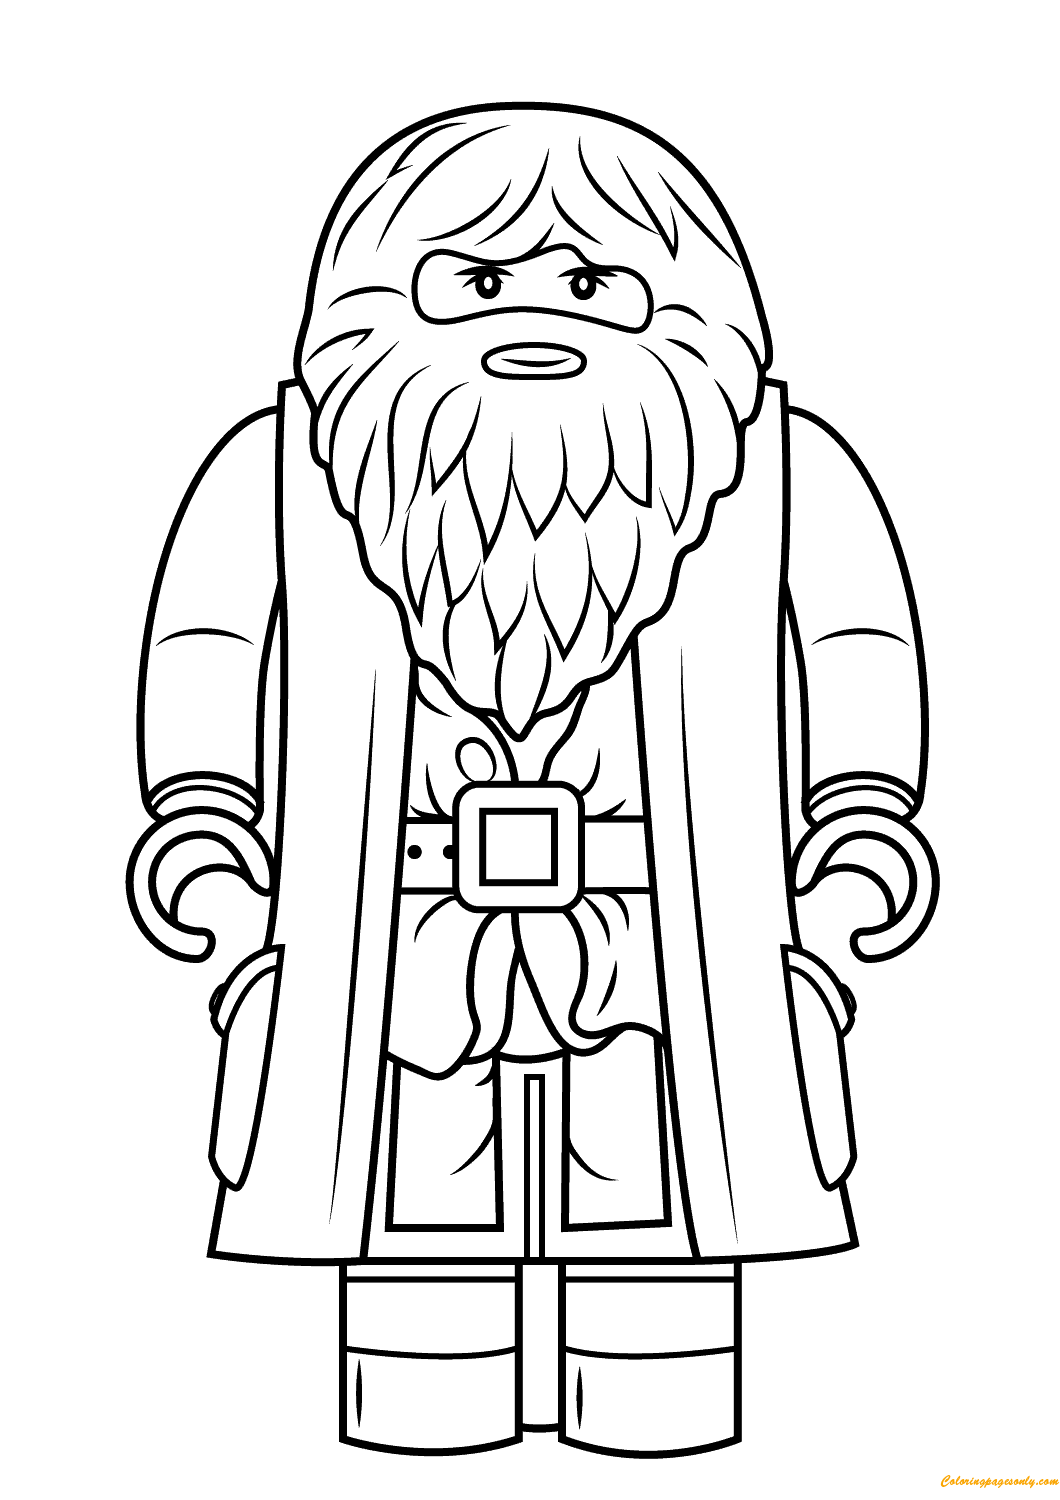 Fun Harry Potter Coloring Pages Ideas For Kids | Harry potter ... | 1500x1060